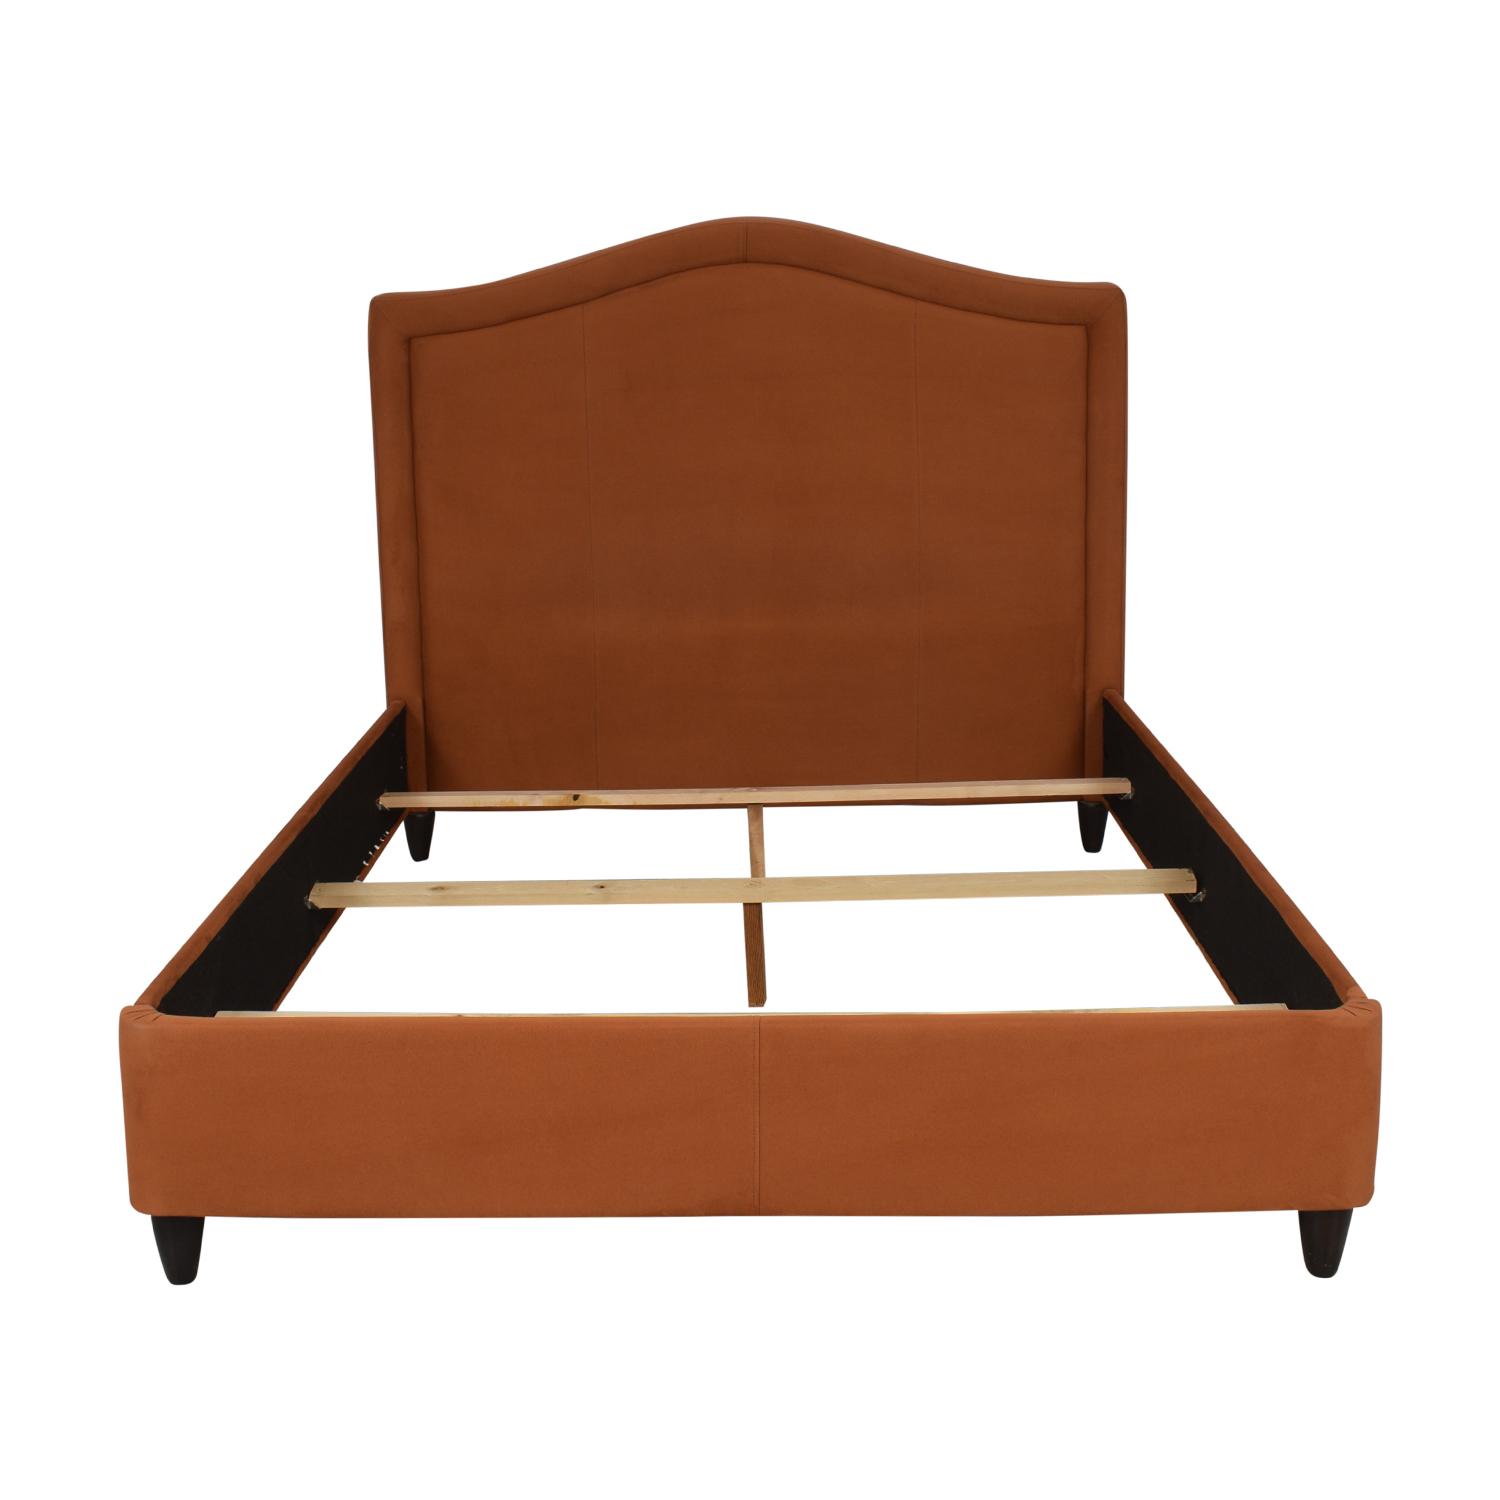 Shermag Shermag Queen Bed coupon